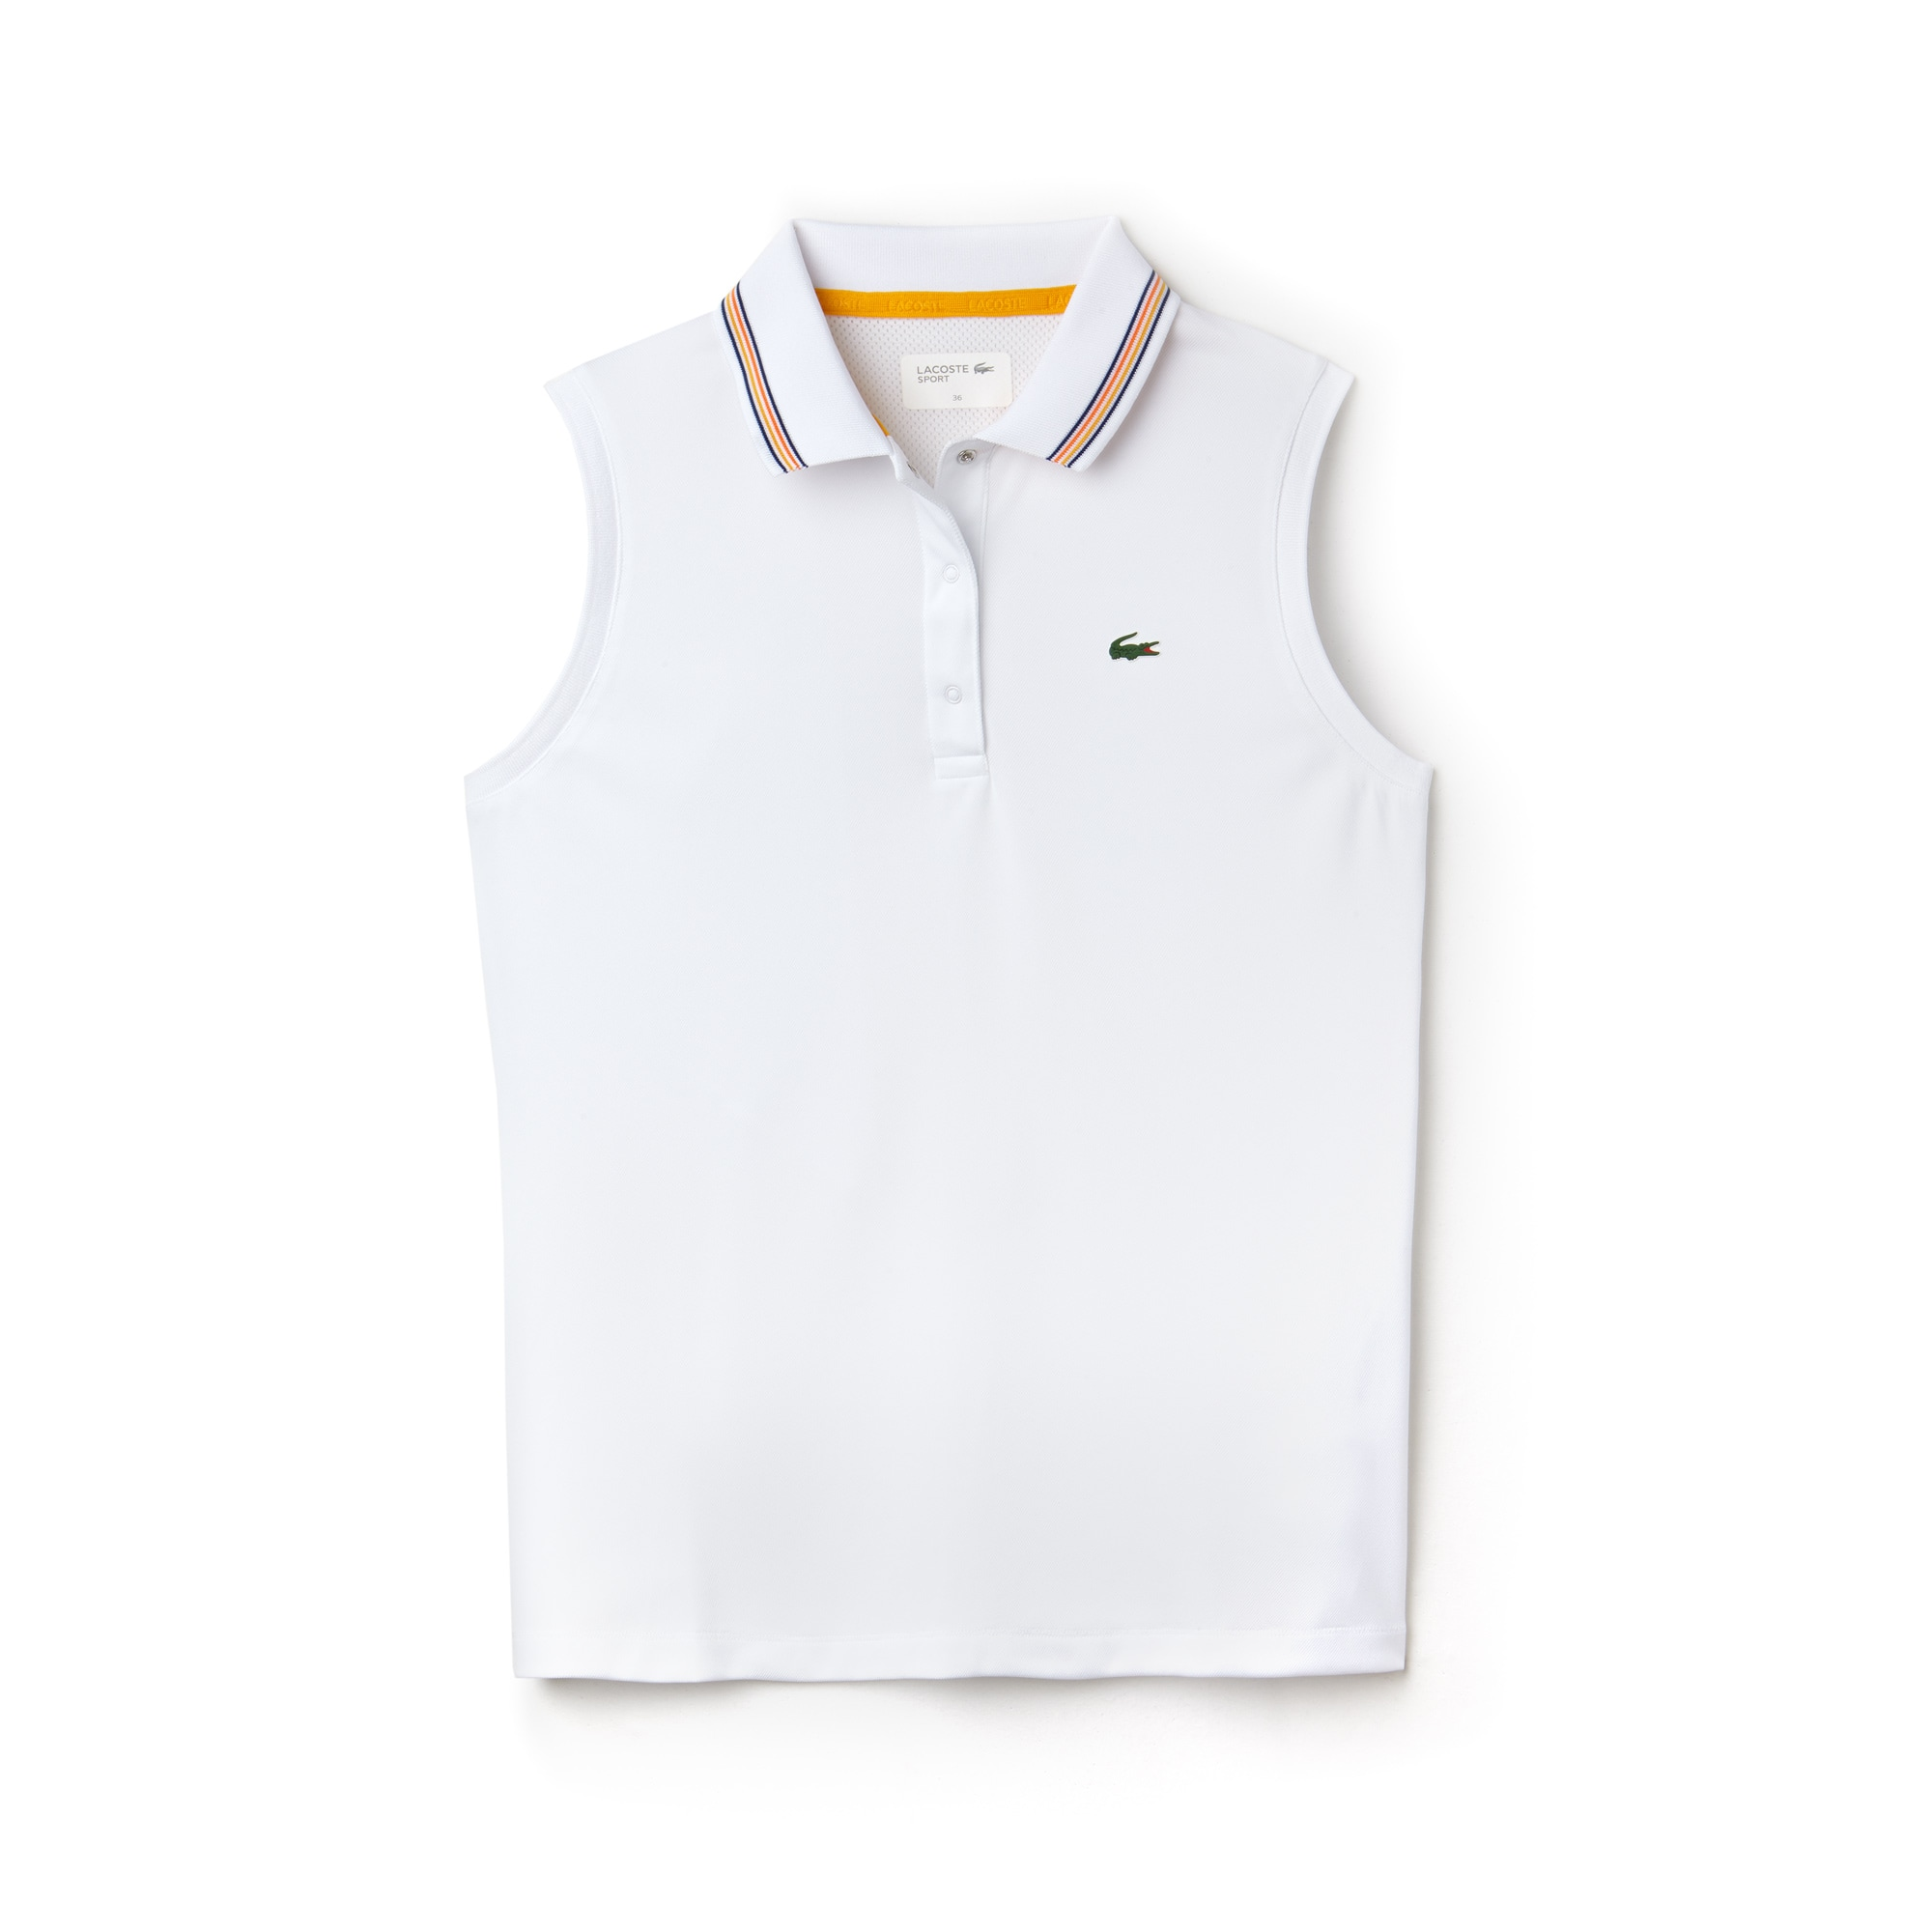 Women's SPORT Tech Jersey And Piqué Tennis Polo